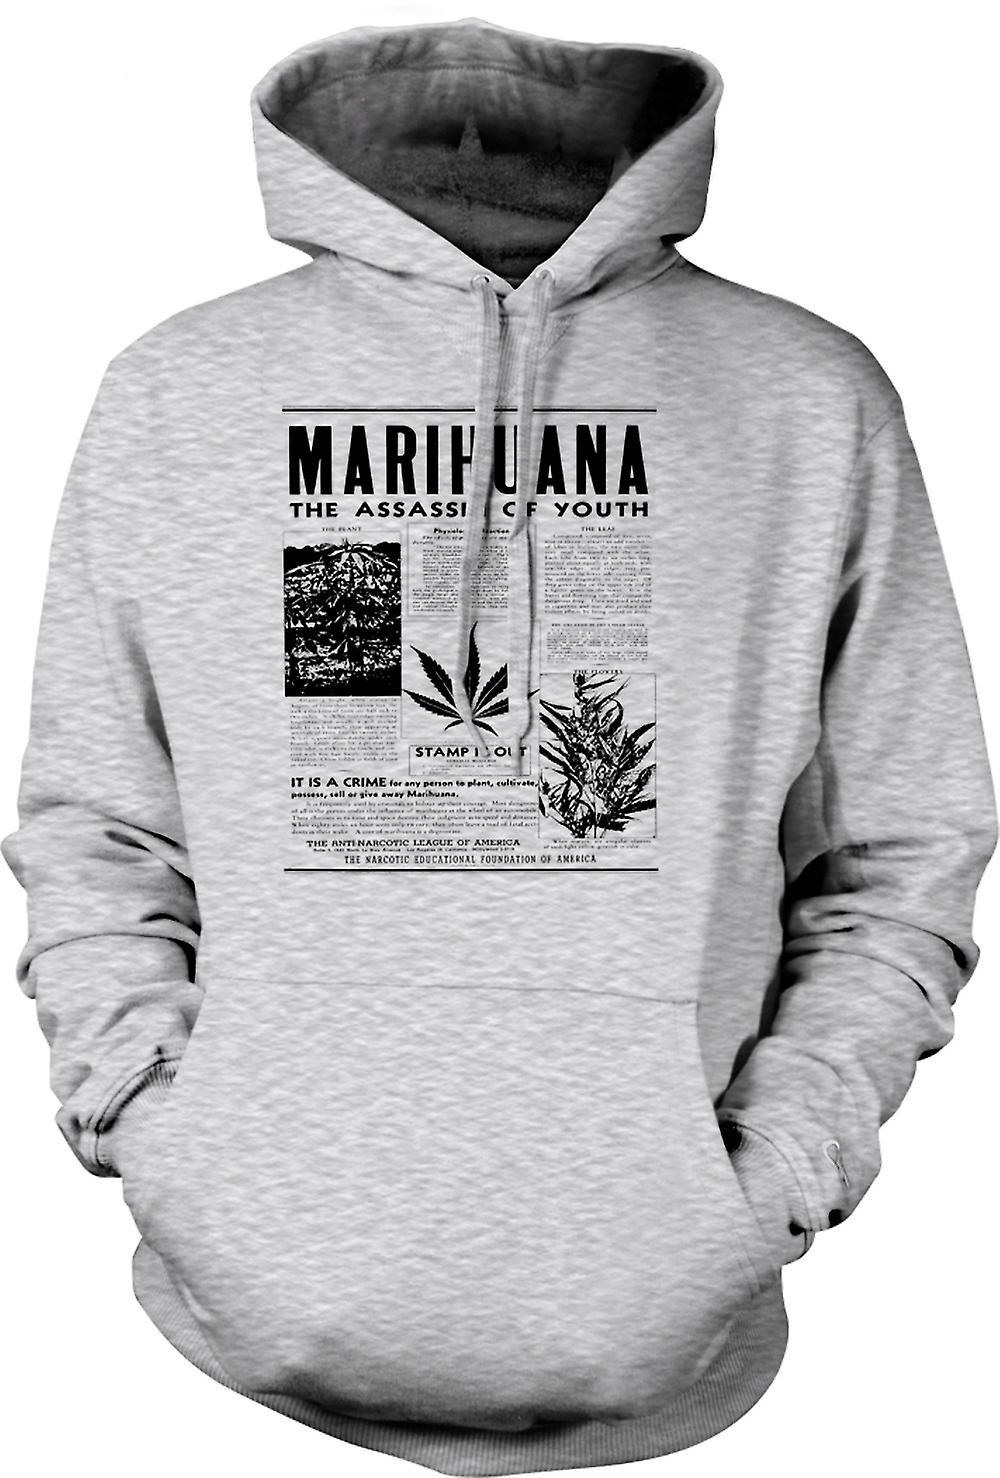 Mens Hoodie - Marihuana Hash - Assassin Of Youth